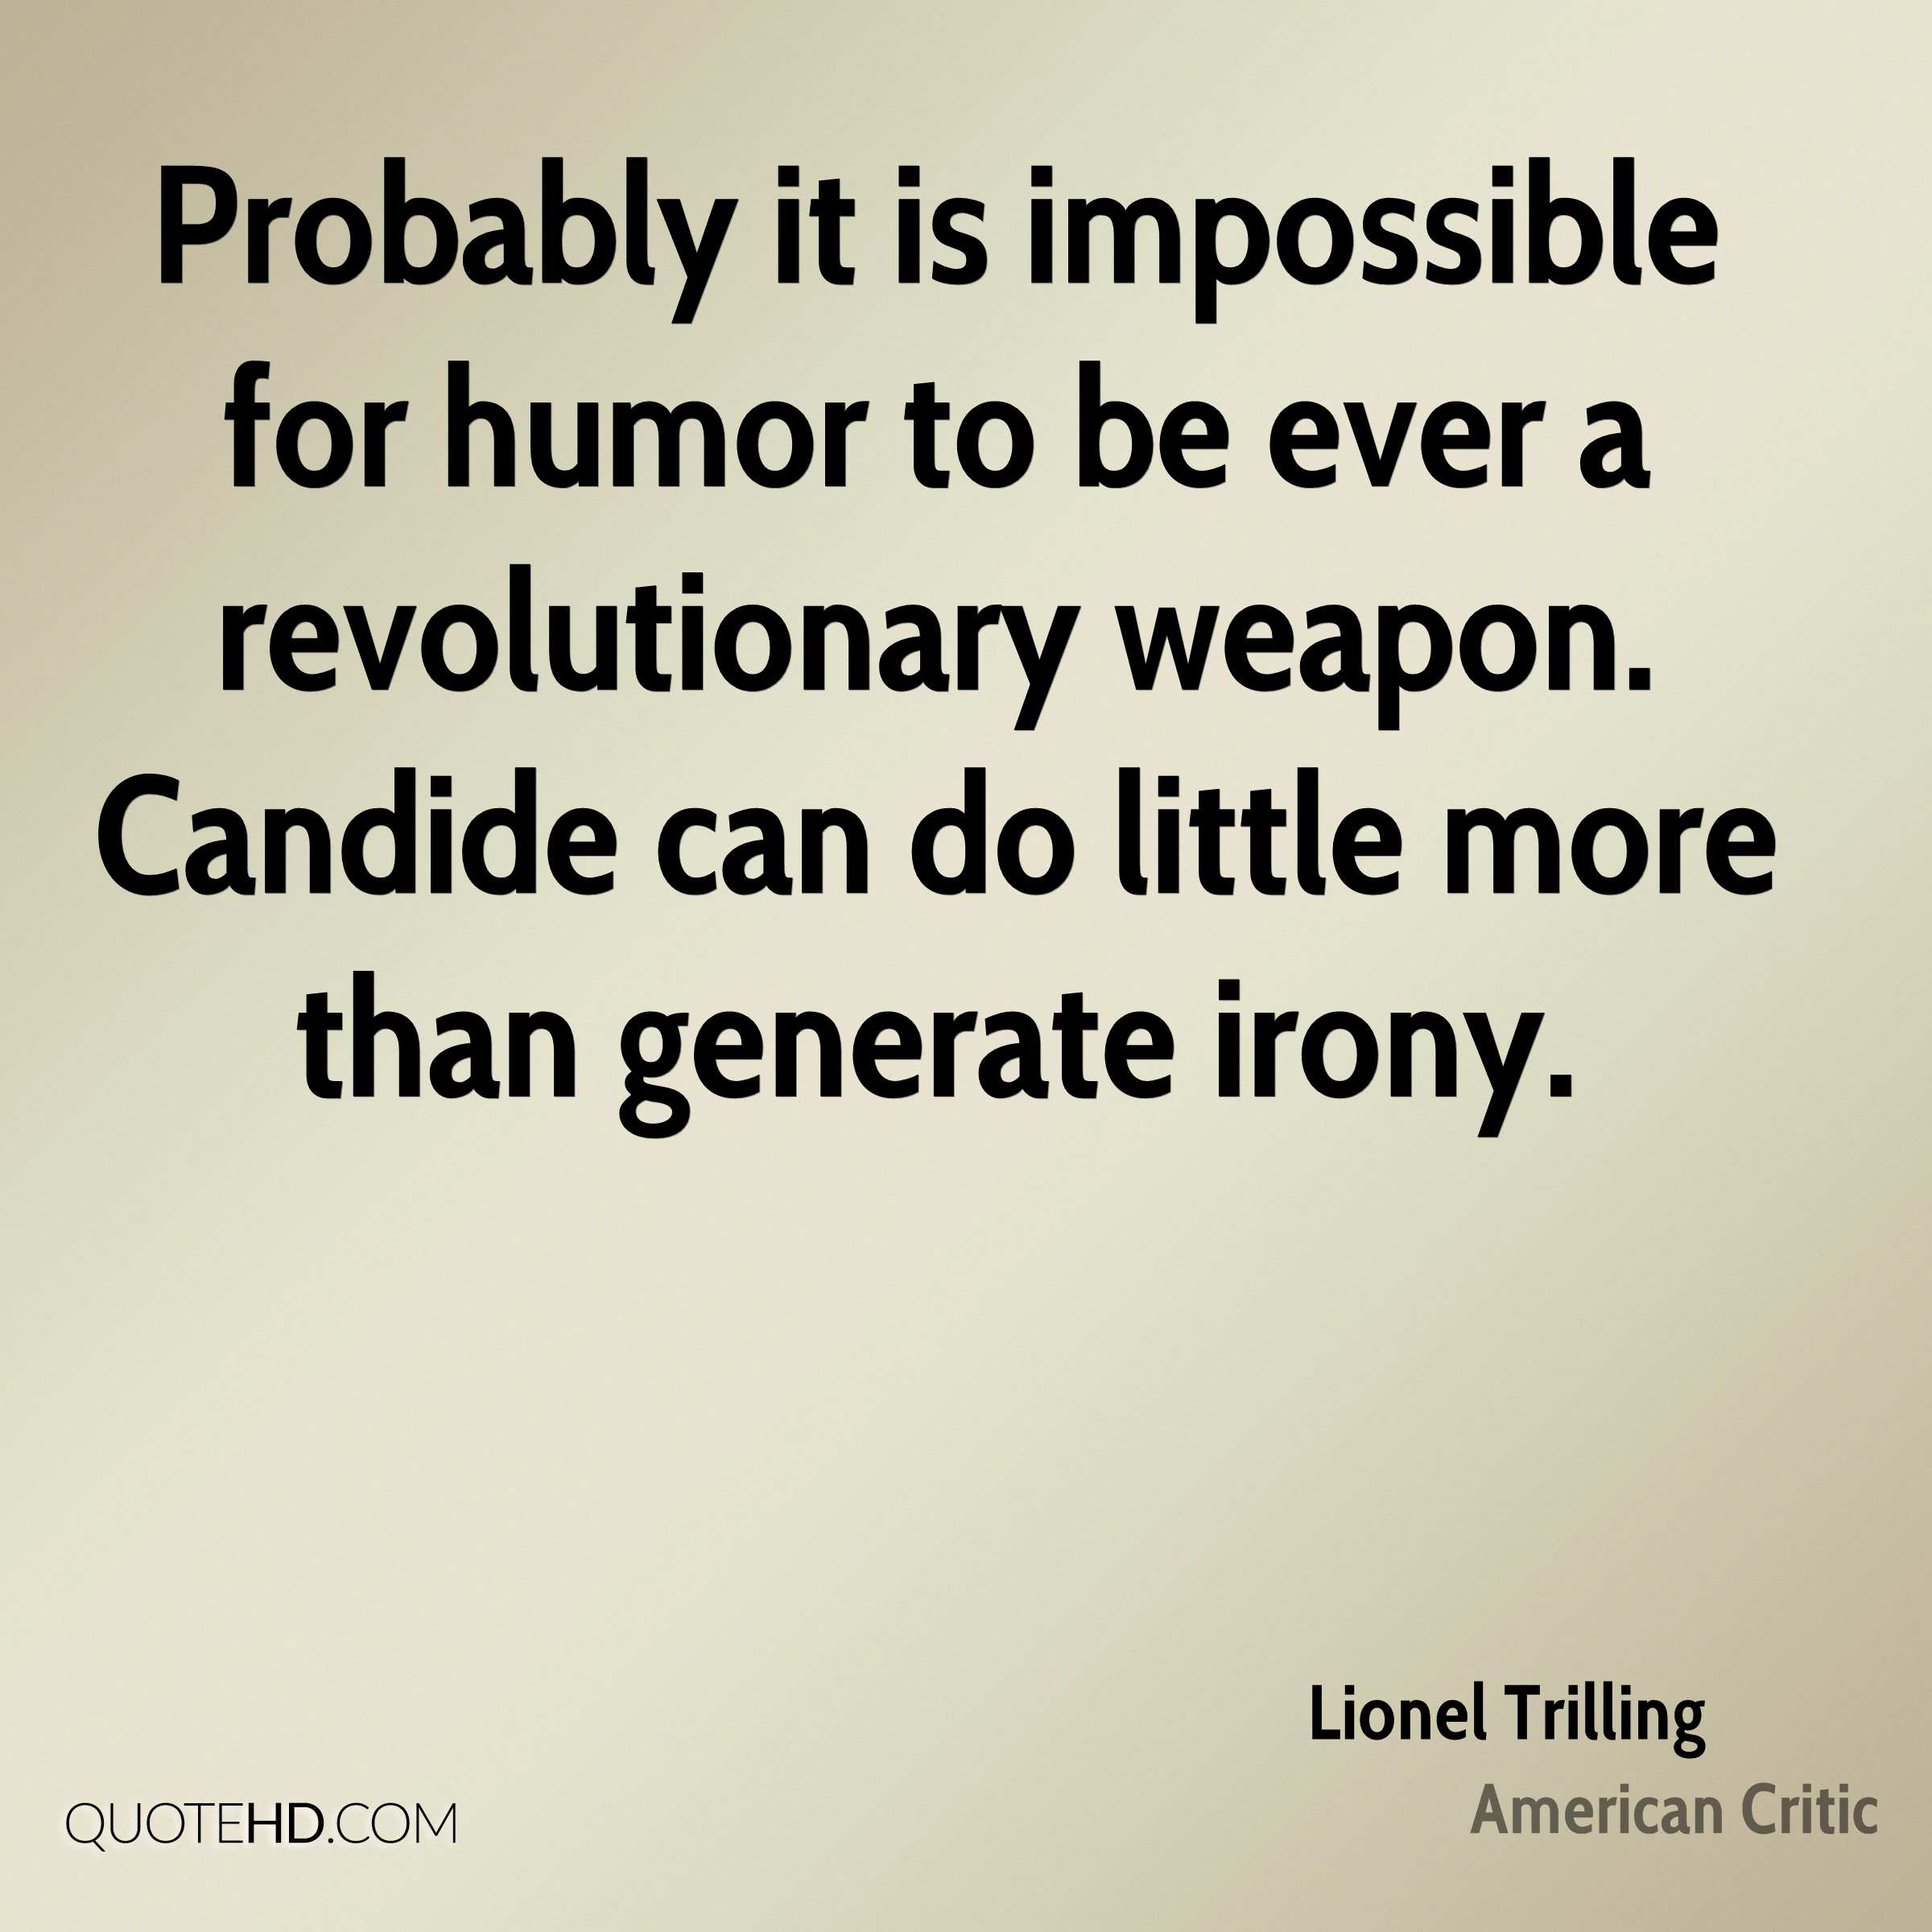 Probably it is impossible for humor to be ever a revolutionary weapon. Candide can do little more than generate irony.